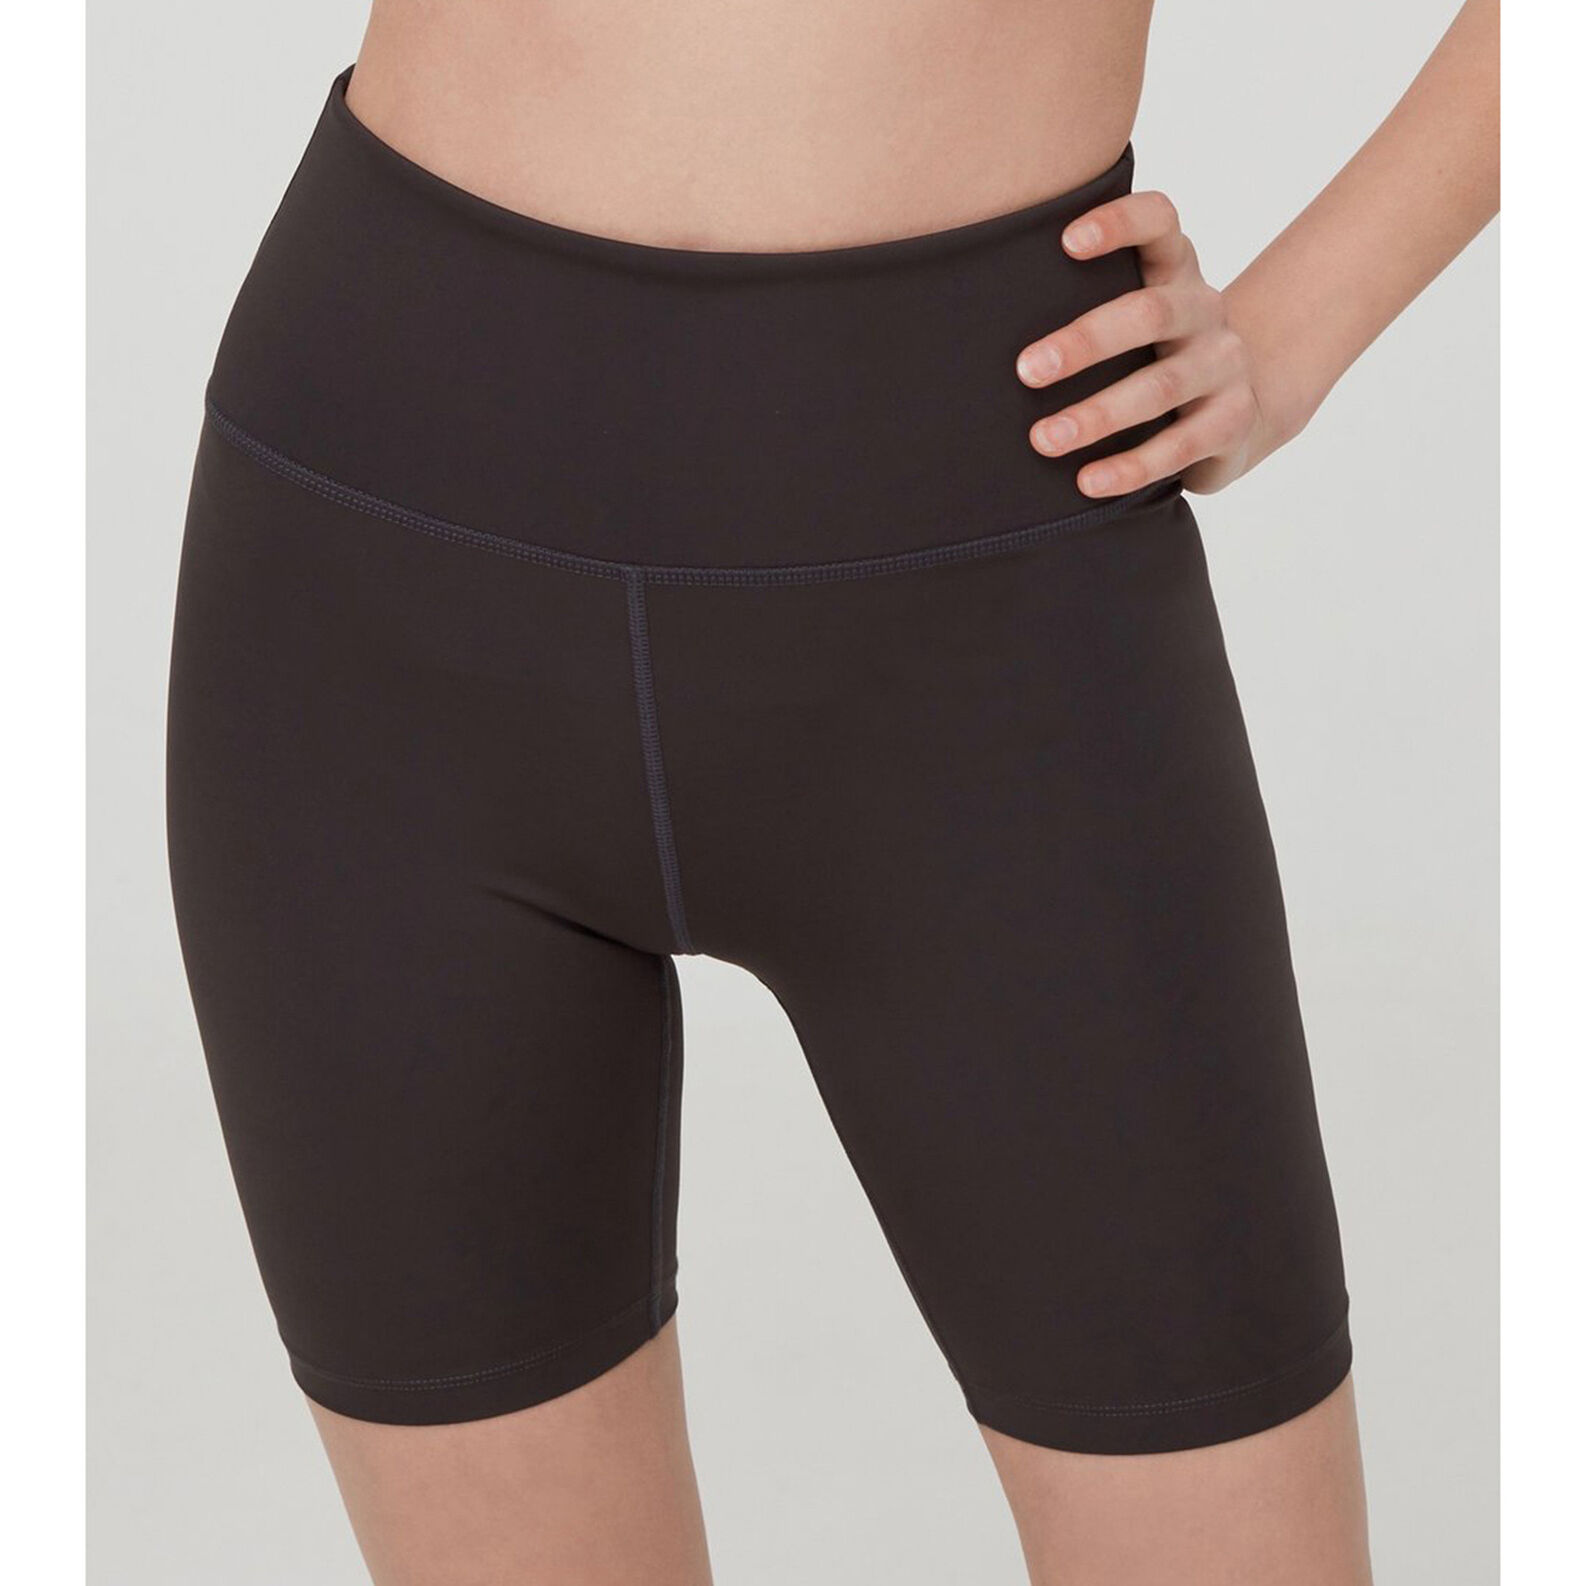 NEREA cycling shorts